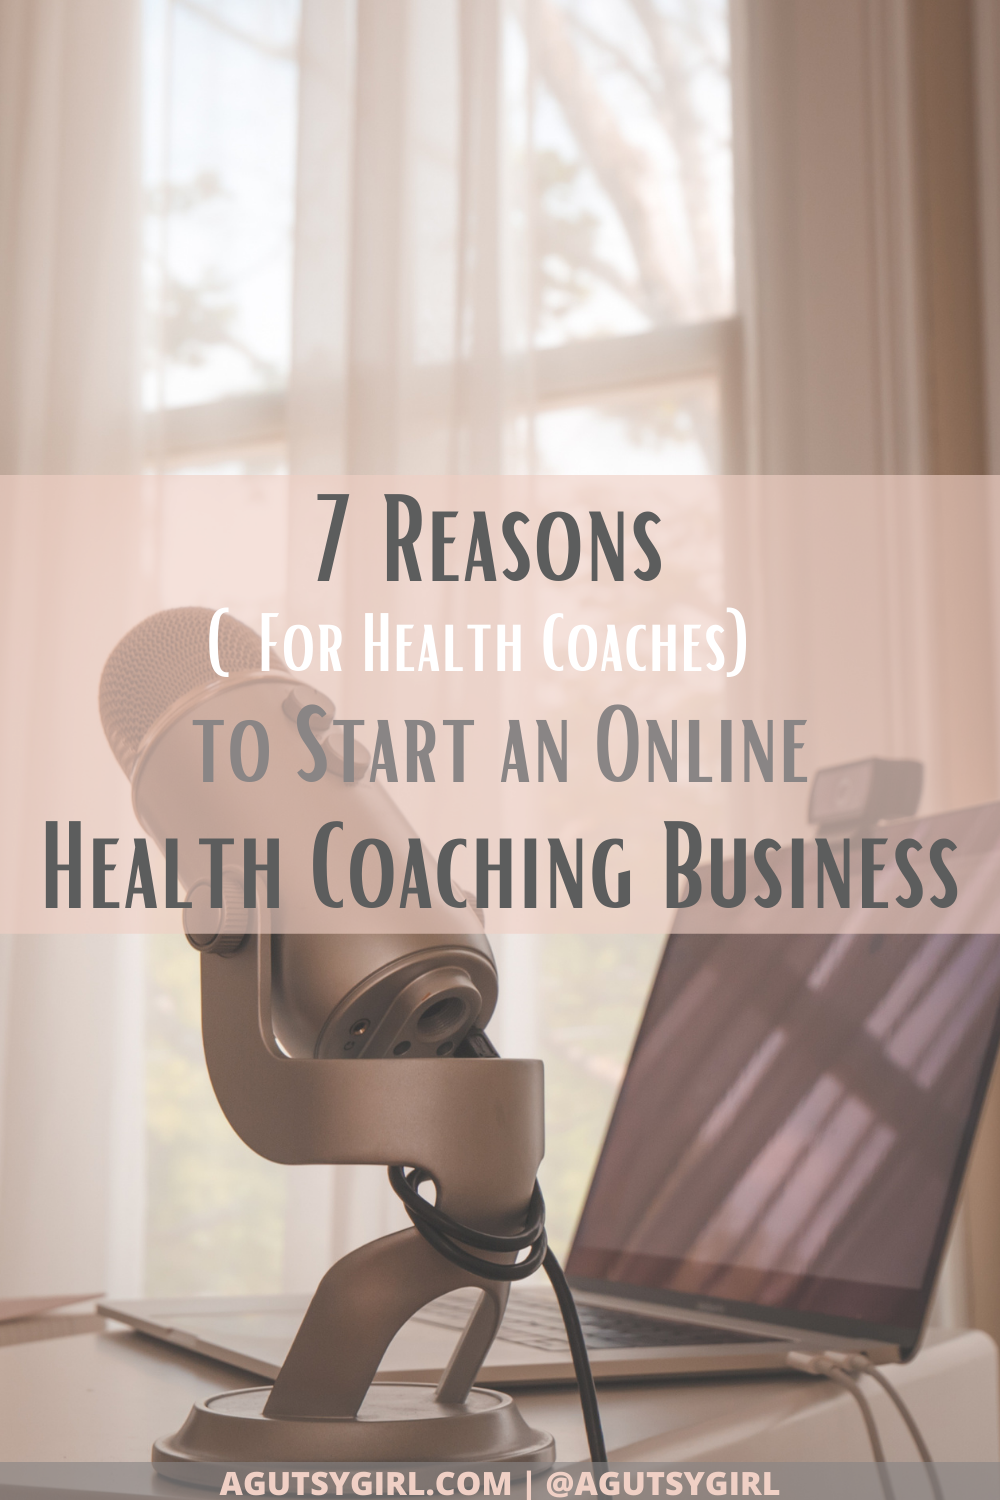 7 Reasons to Start an Online Health Coaching Business agutsygirl.com #healthcoaching #IIN #onlinebusiness